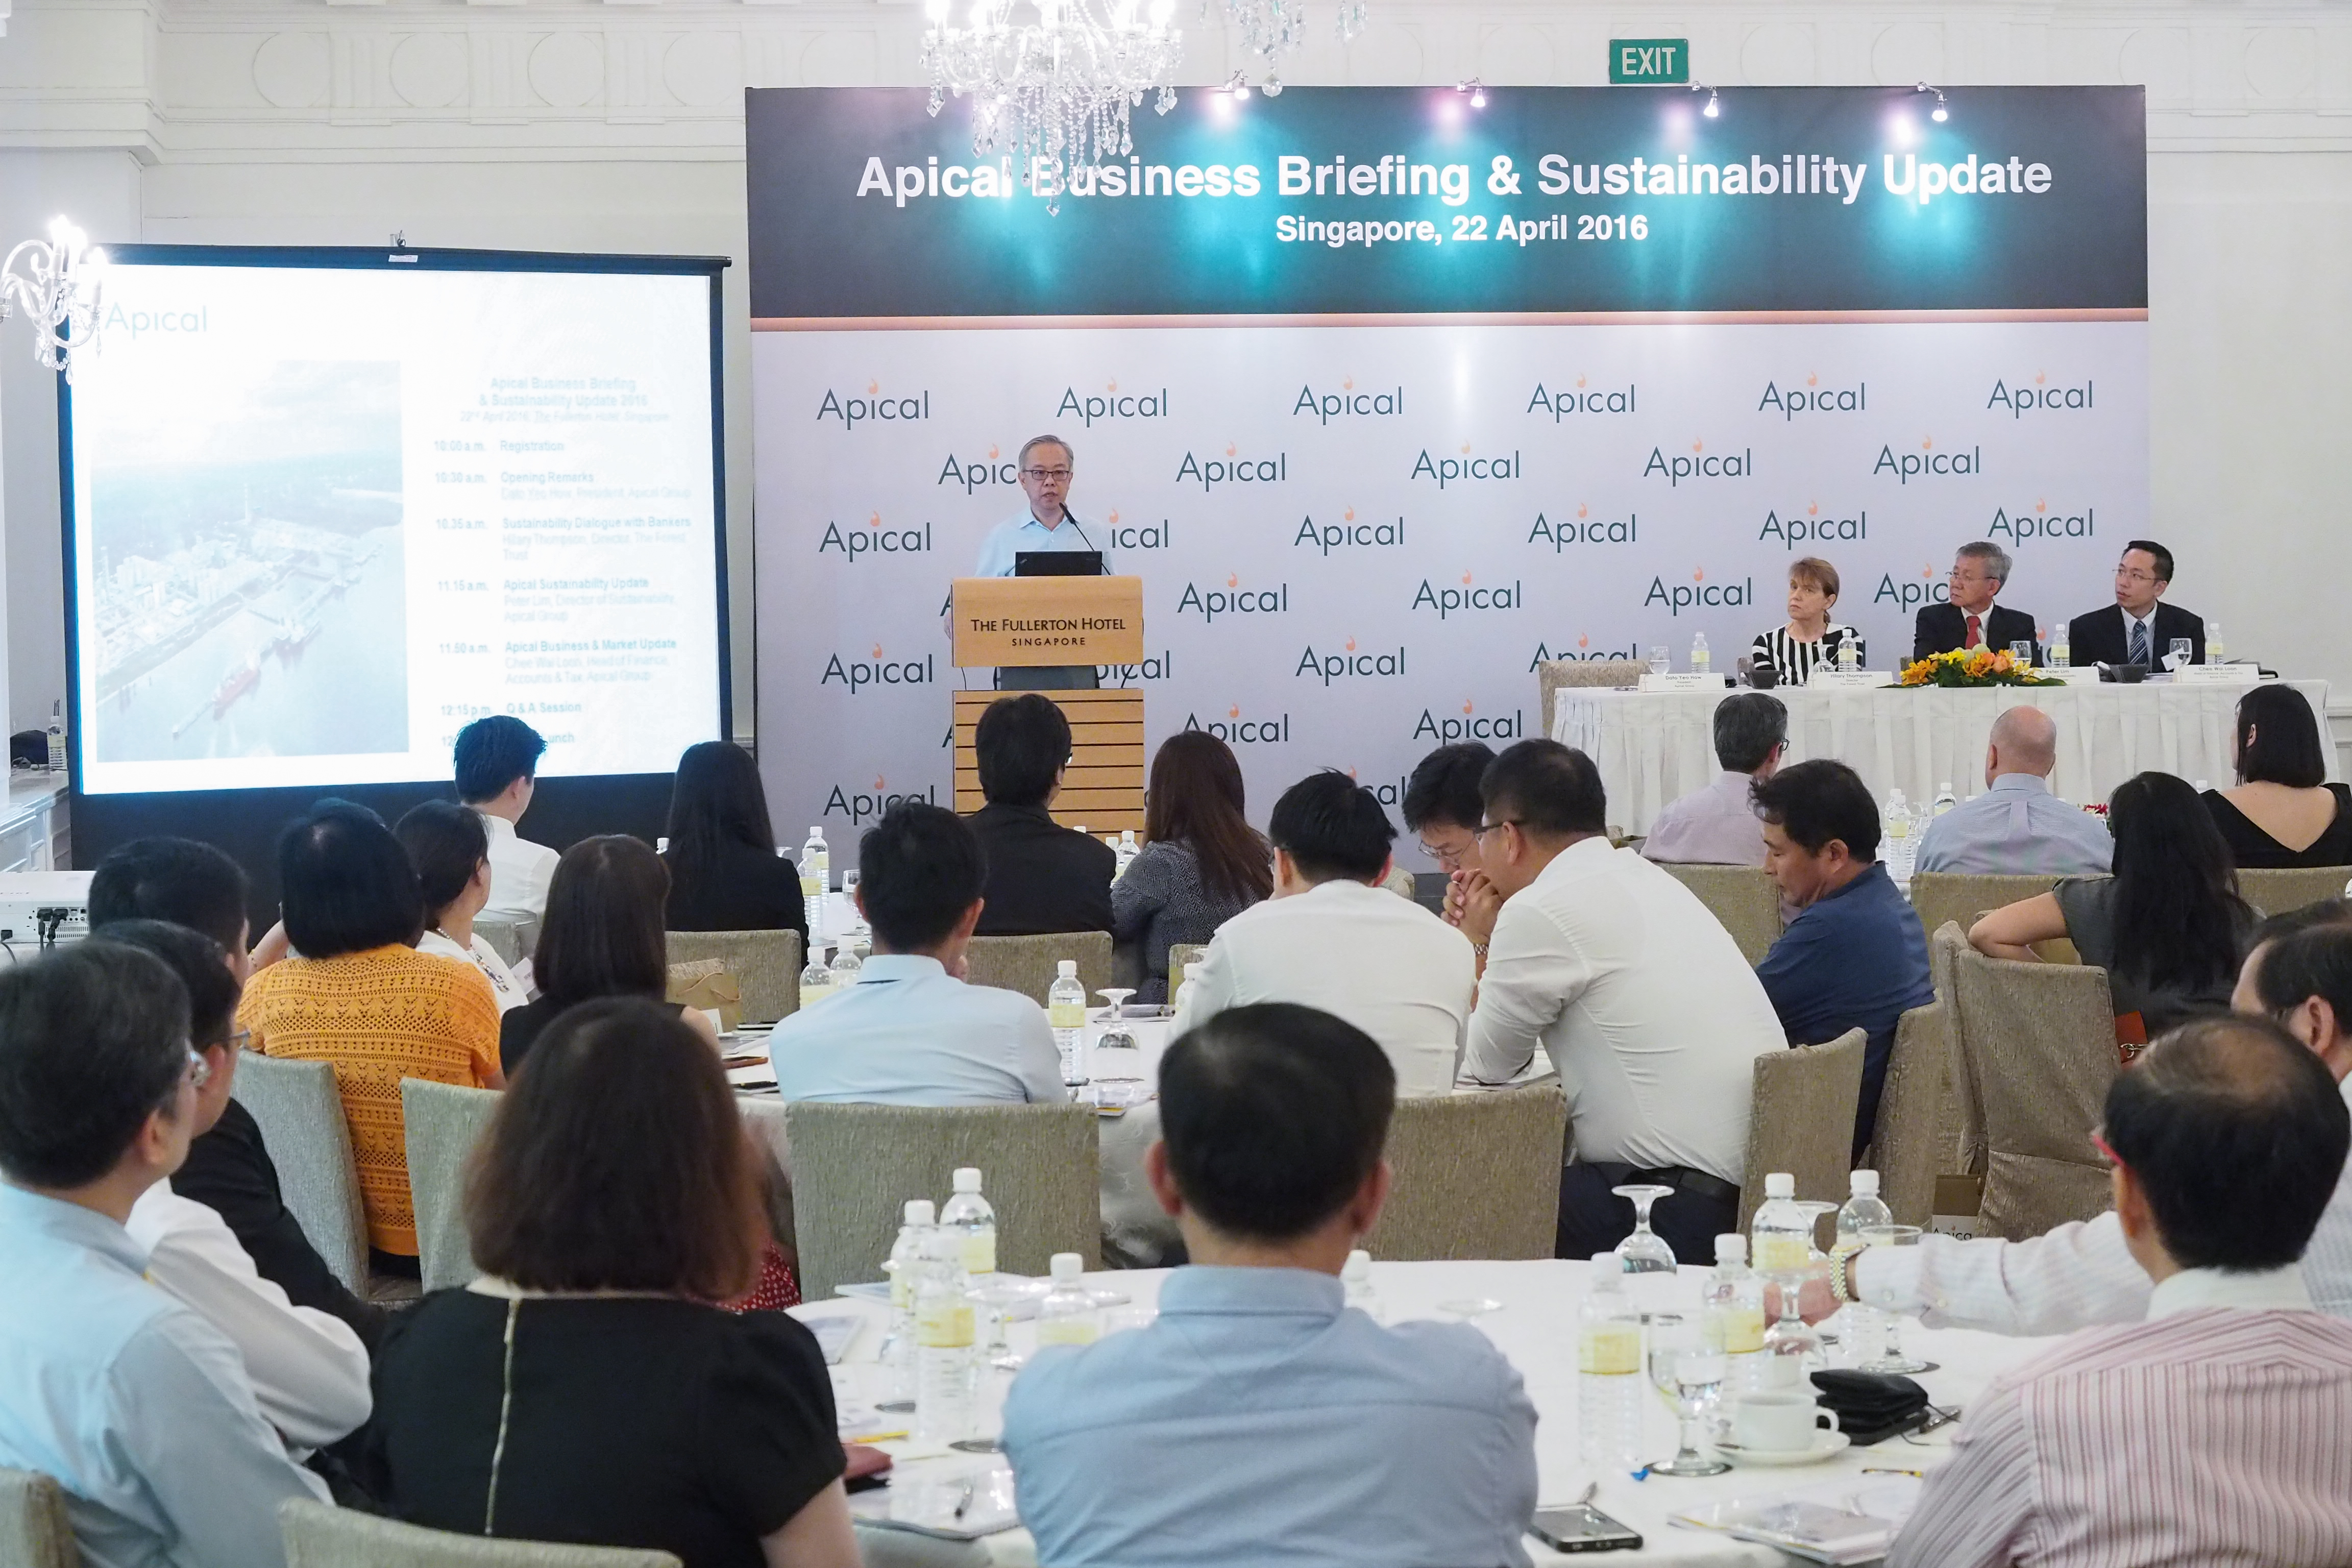 Apical's President Dato' Yeo How giving his opening remarks. During the dialog, he was accompanied by TFT's Director Hilary Thompson, Apical's Director of Sustainability Dr. Peter Lim and Head of Finance Accounting and Tax Chee Wai Loon.